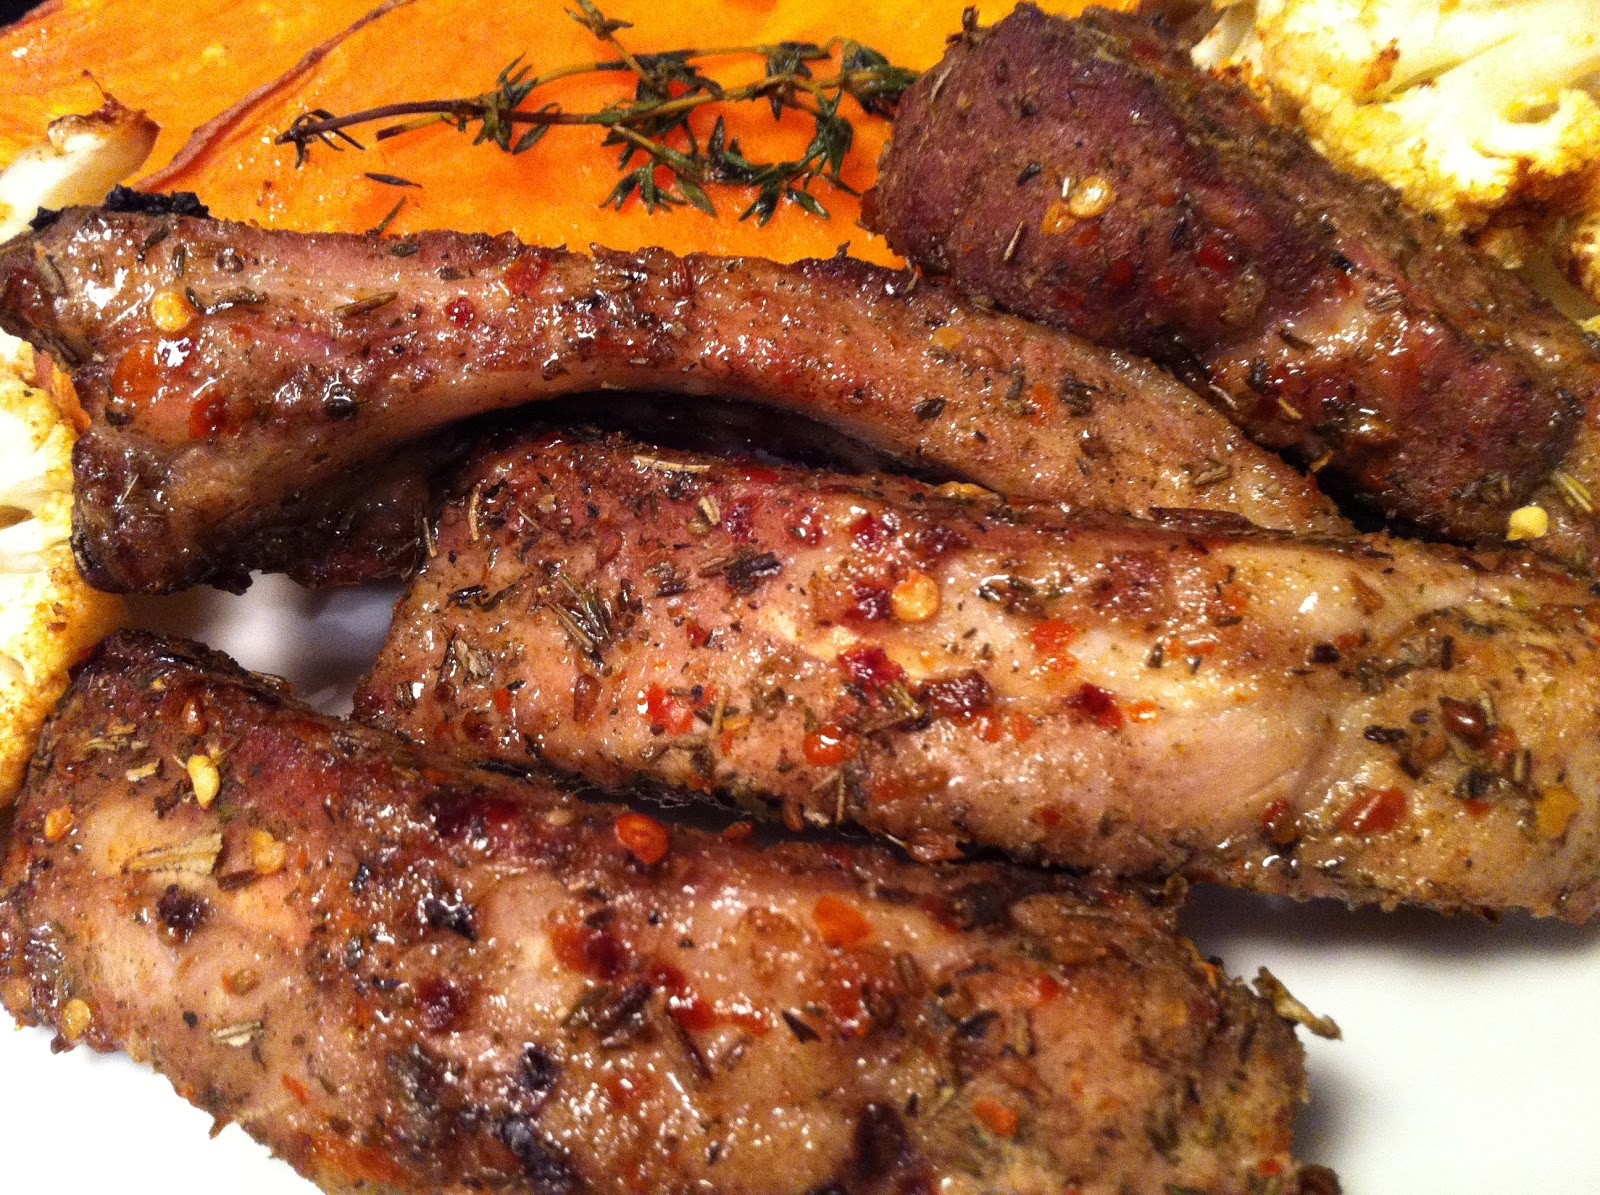 ... rubbed pork chops coriander and cumin rubbed pork chops spice rubbed